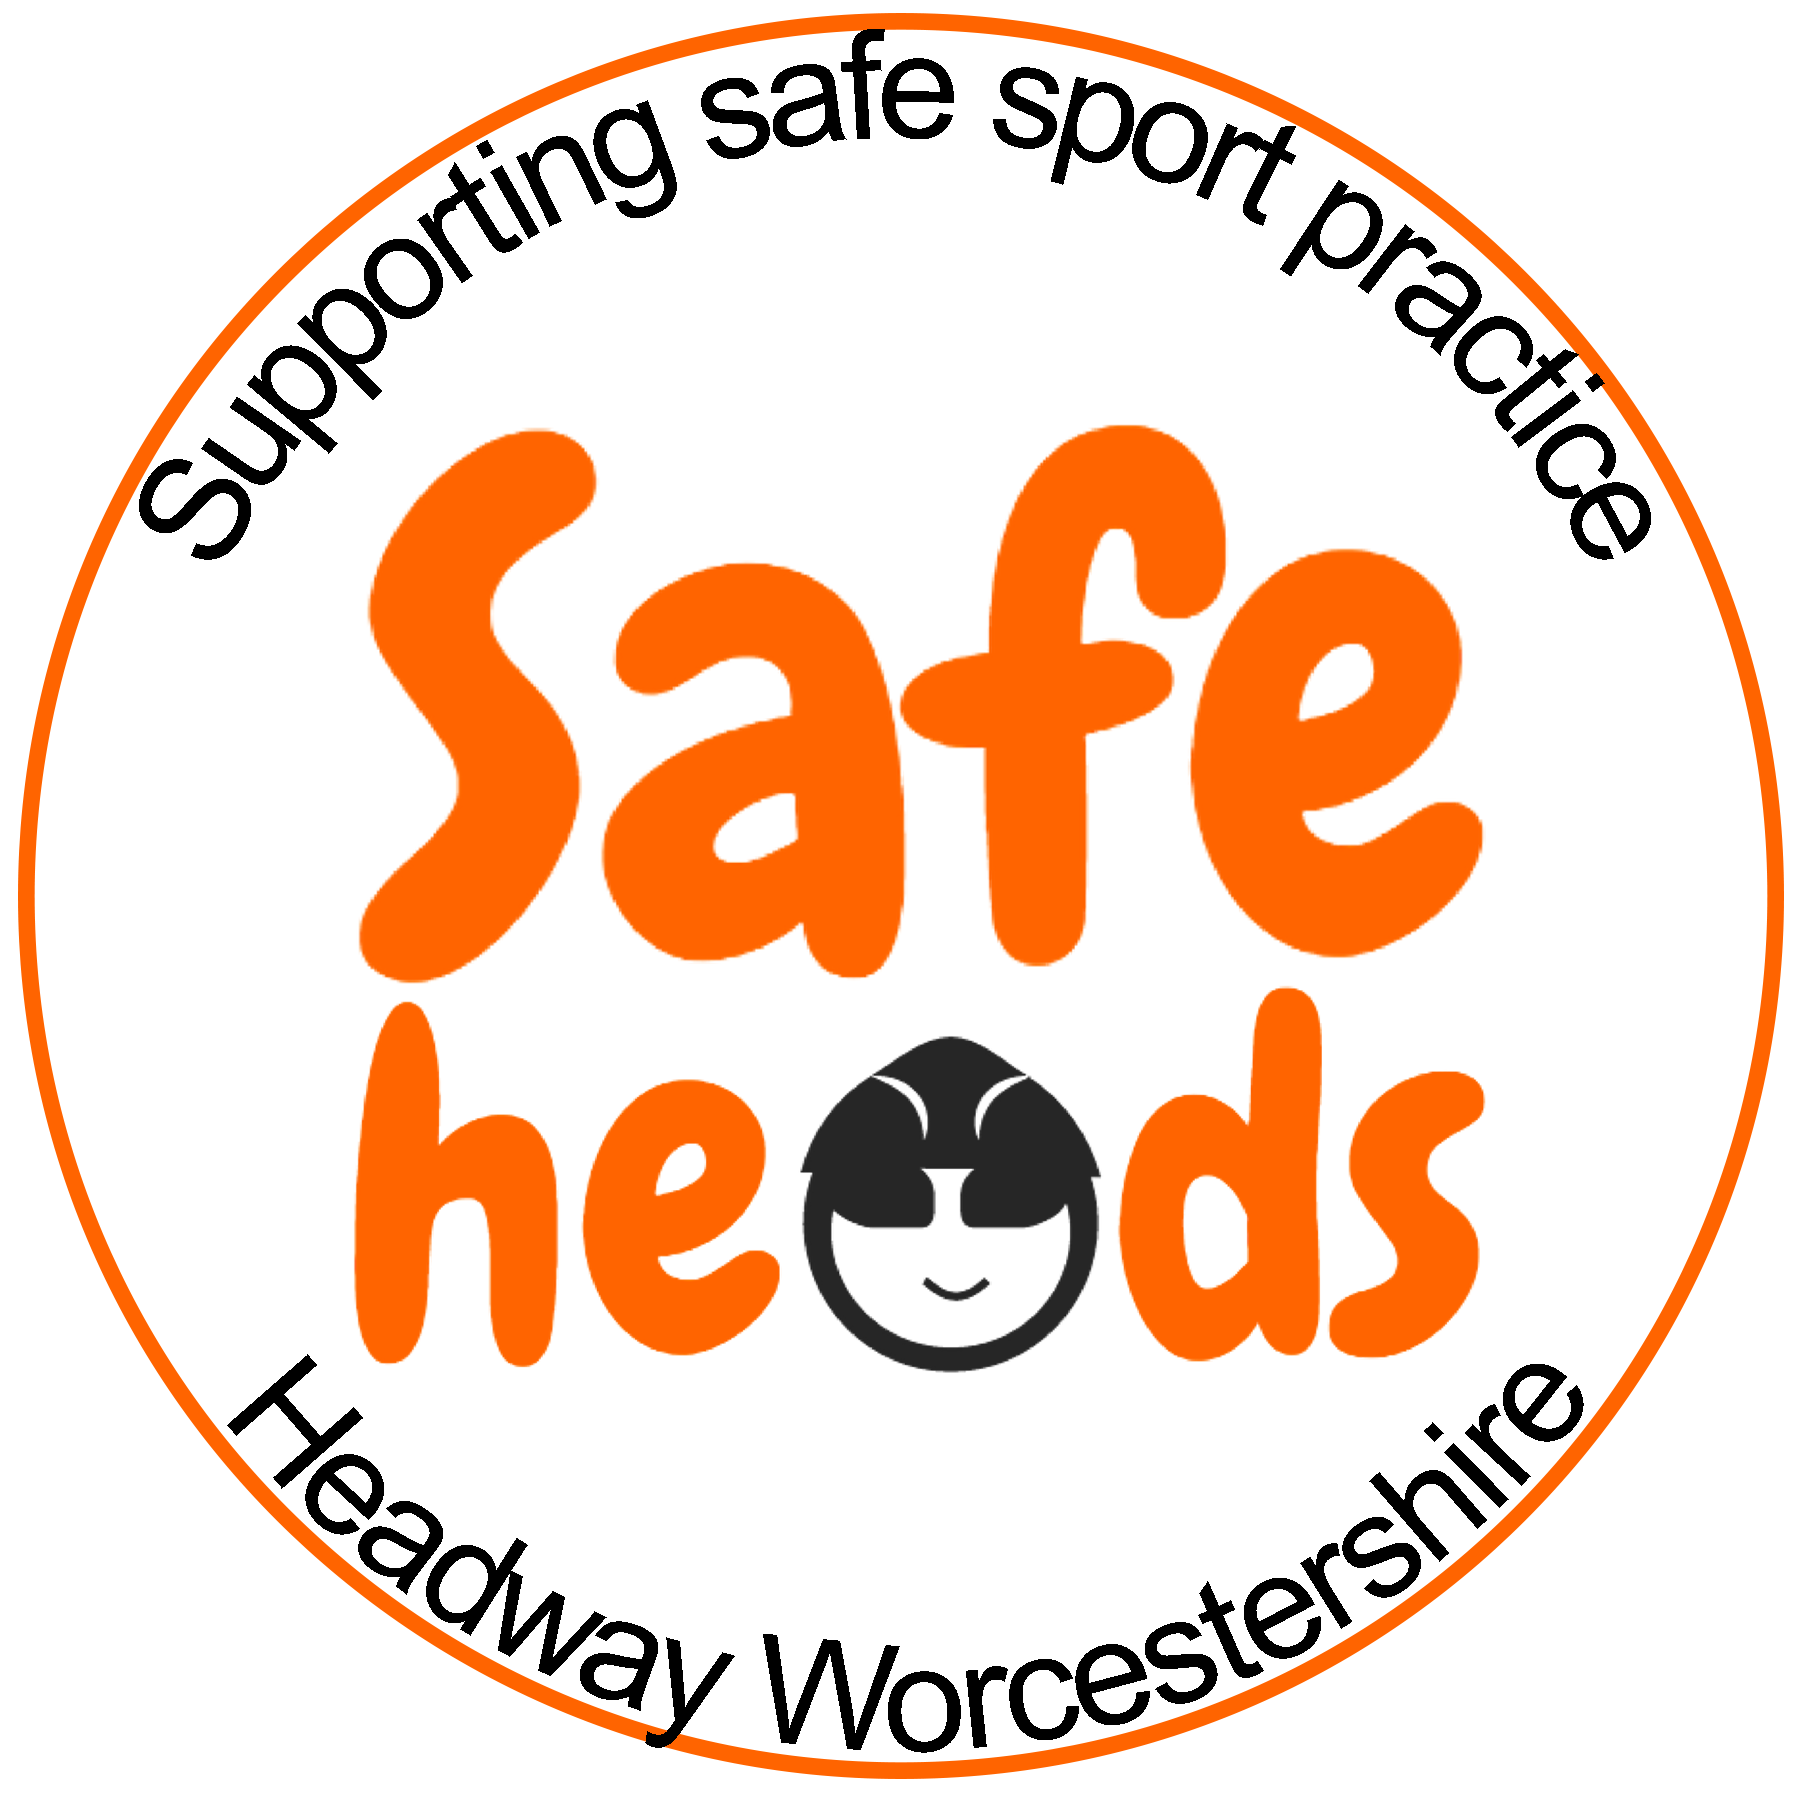 The Safeheads badge! Sign the pledge to get yours!